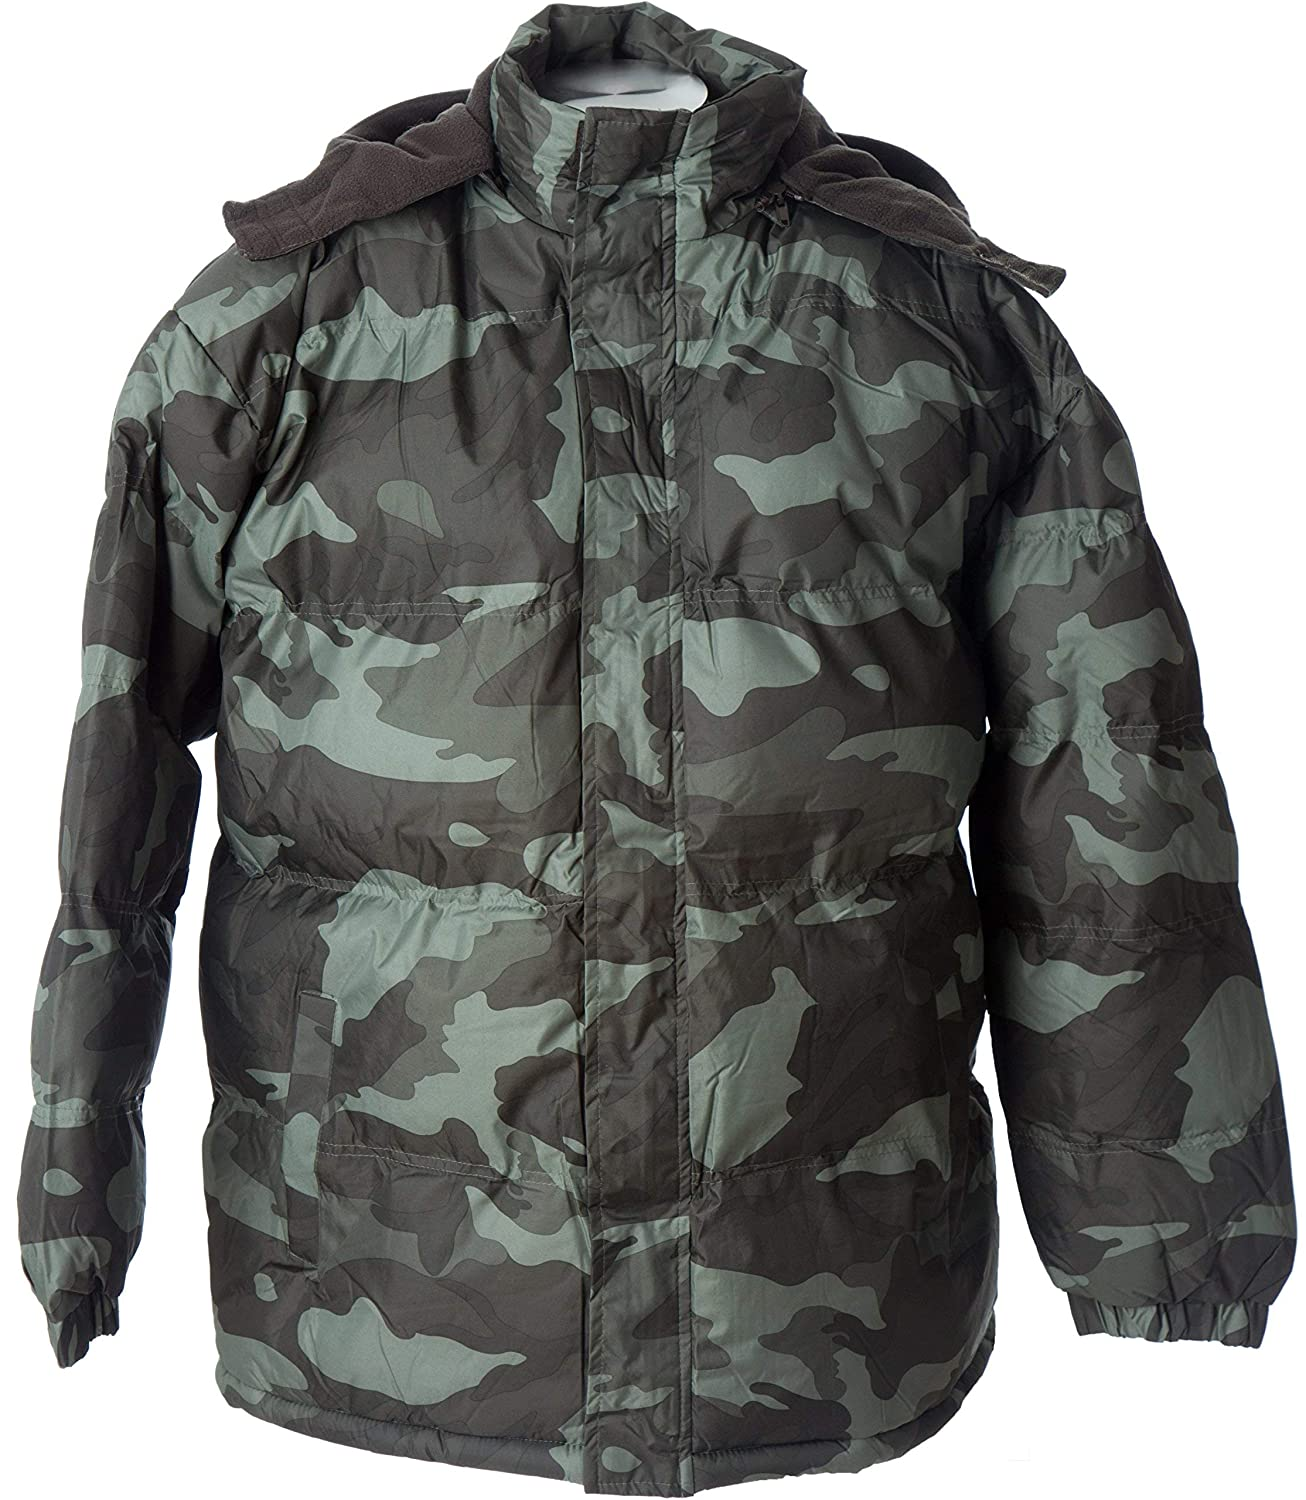 ad4fd34cc1c7d Polar Ice Lion Force Mens' Warm Camouflage Hooded Hunting Jacket Puffer  Winter Coat at Amazon Men's Clothing store: